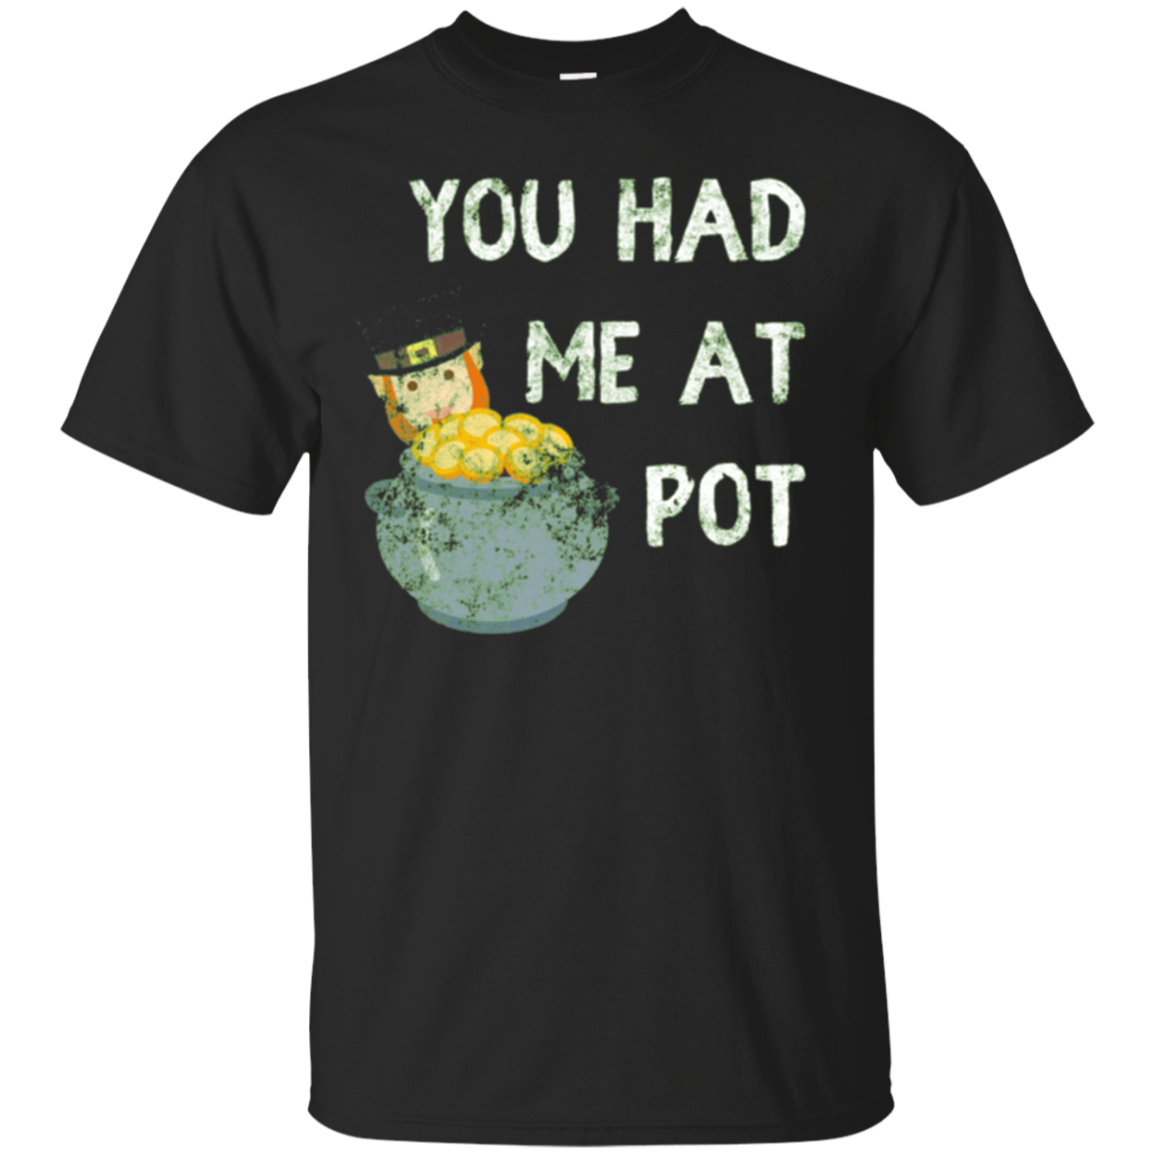 You Had Me At Pot | Funny St Patricks Day Shirt for Stoners